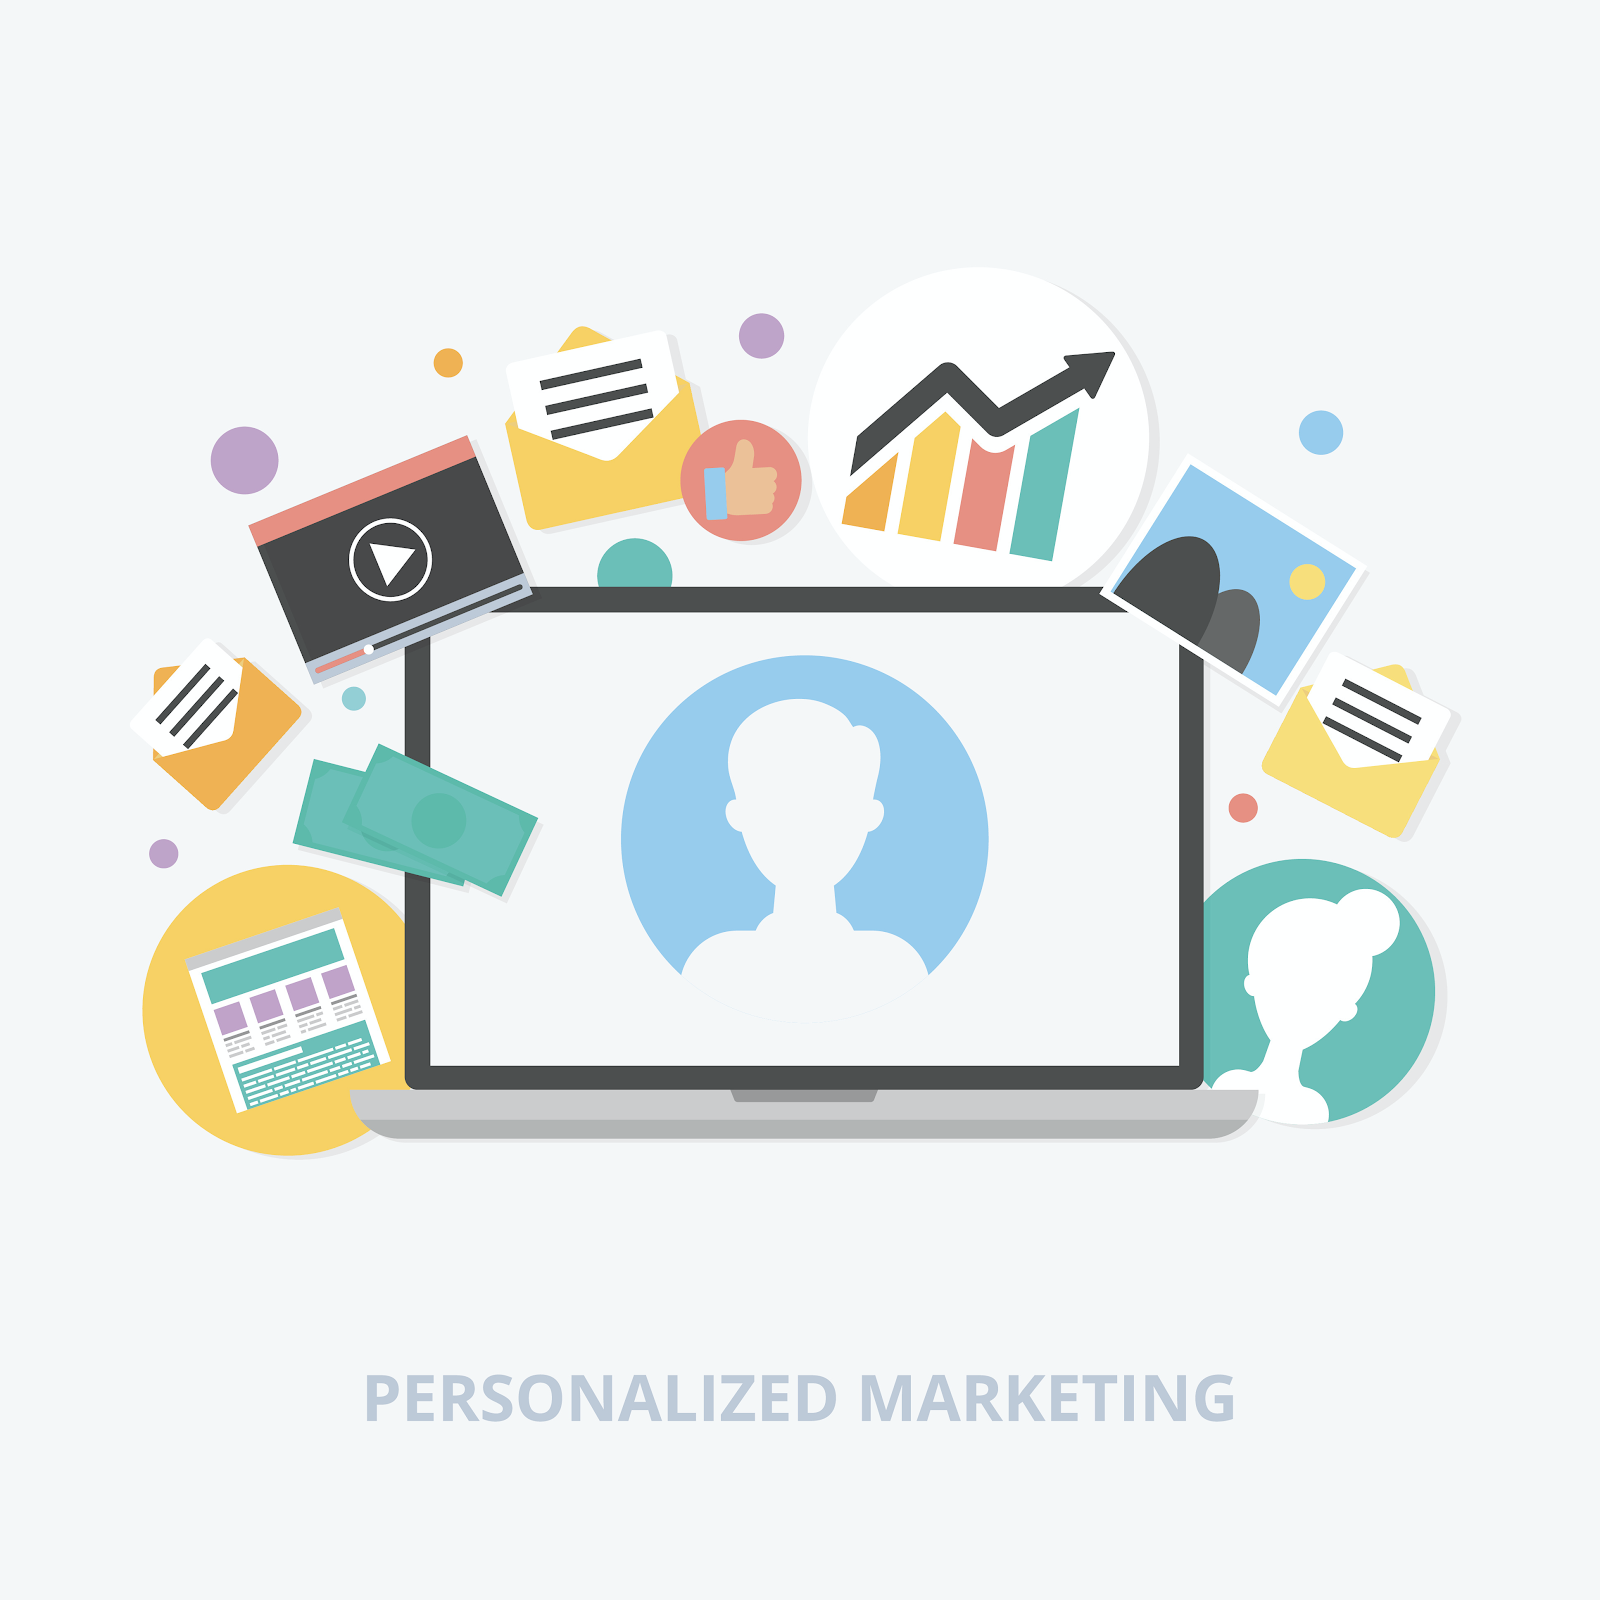 Deliver personalized content to your leads based on their previous HubSpot engagement.